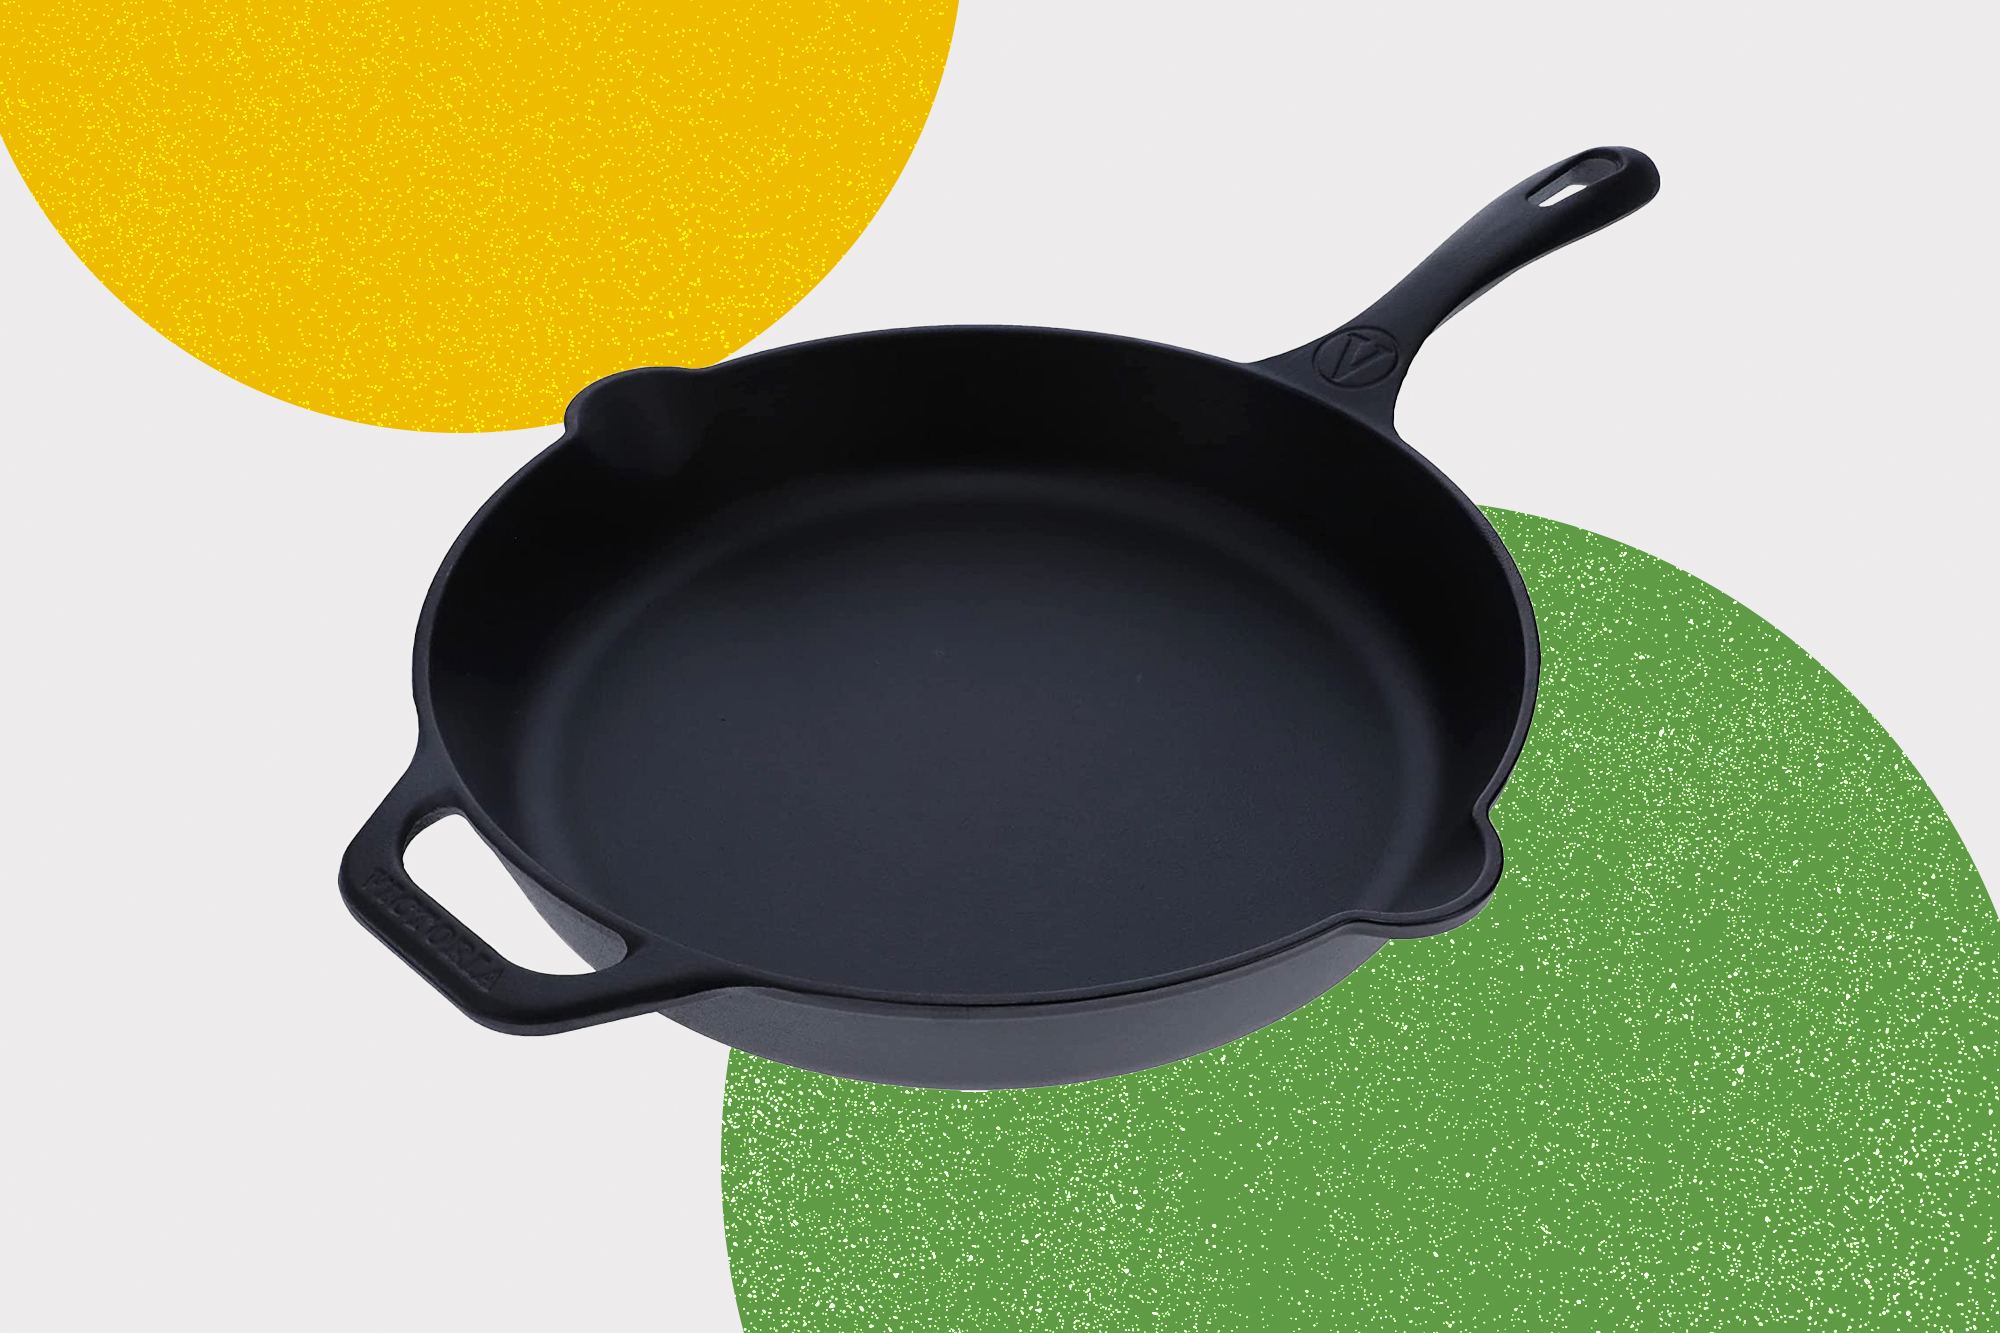 Victoria Cast Iron Skillet Large Frying Pan with Helper Handle Seasoned with 100% Kosher Certified Non-GMO Flaxseed Oil, 12 Inch, Black